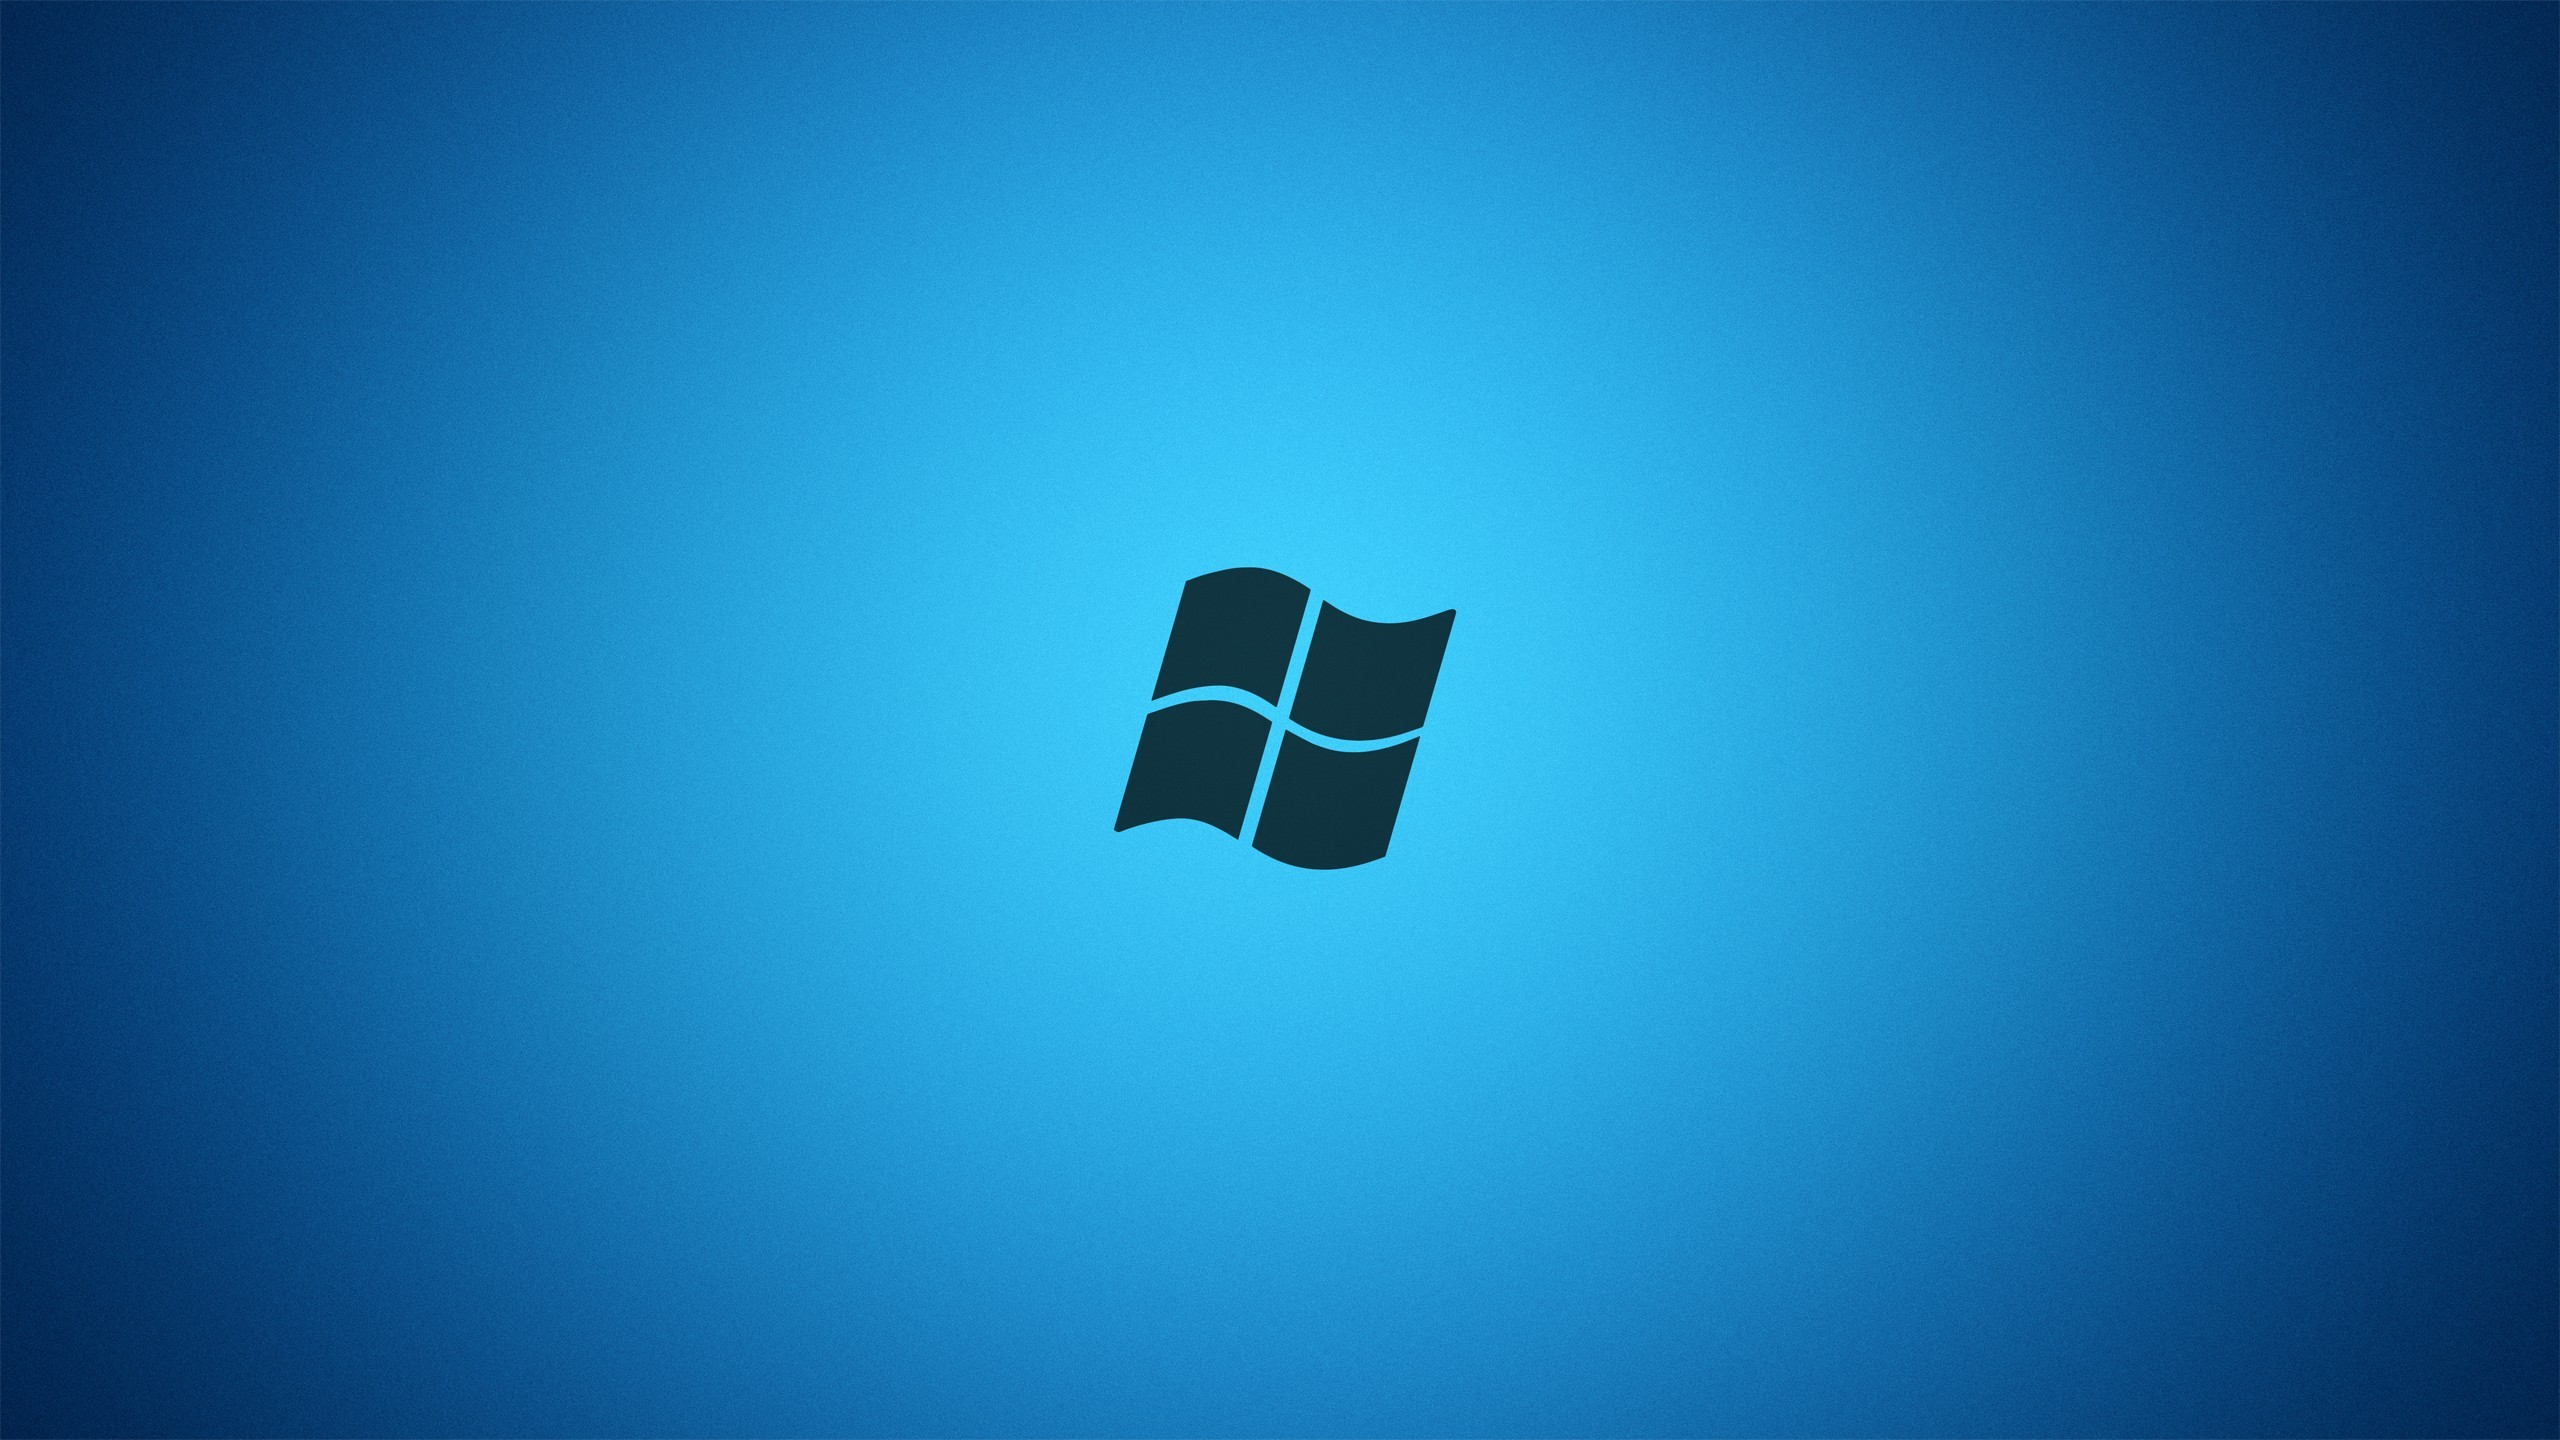 Windows 7 Simple HD Computer 4k Wallpapers Images Backgrounds